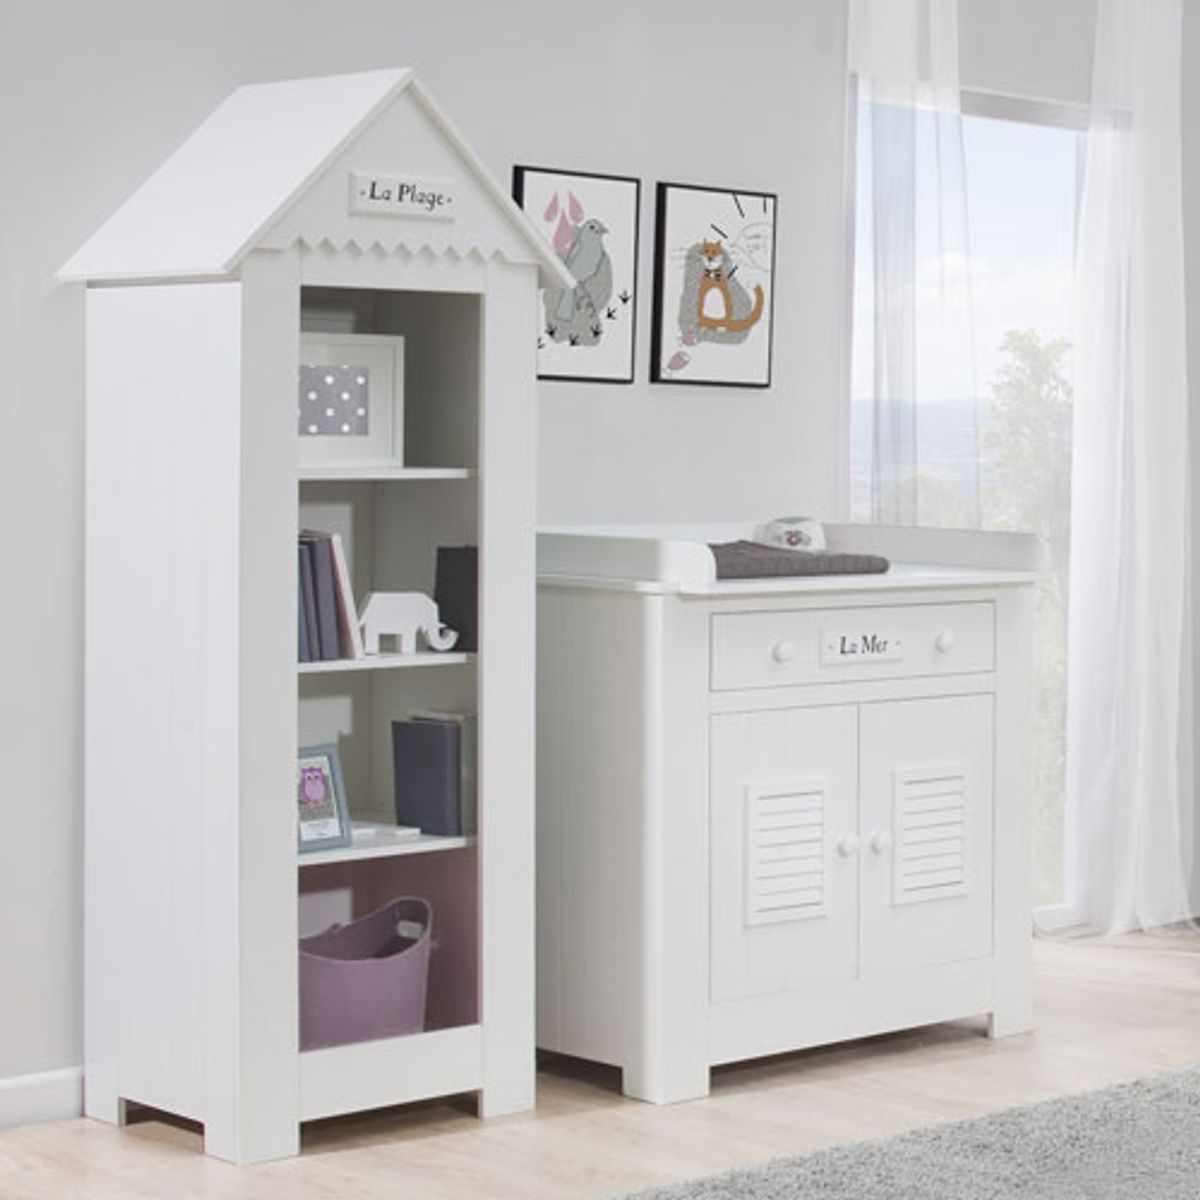 biblioth que enfant cabine de plage en bois blanc 3. Black Bedroom Furniture Sets. Home Design Ideas